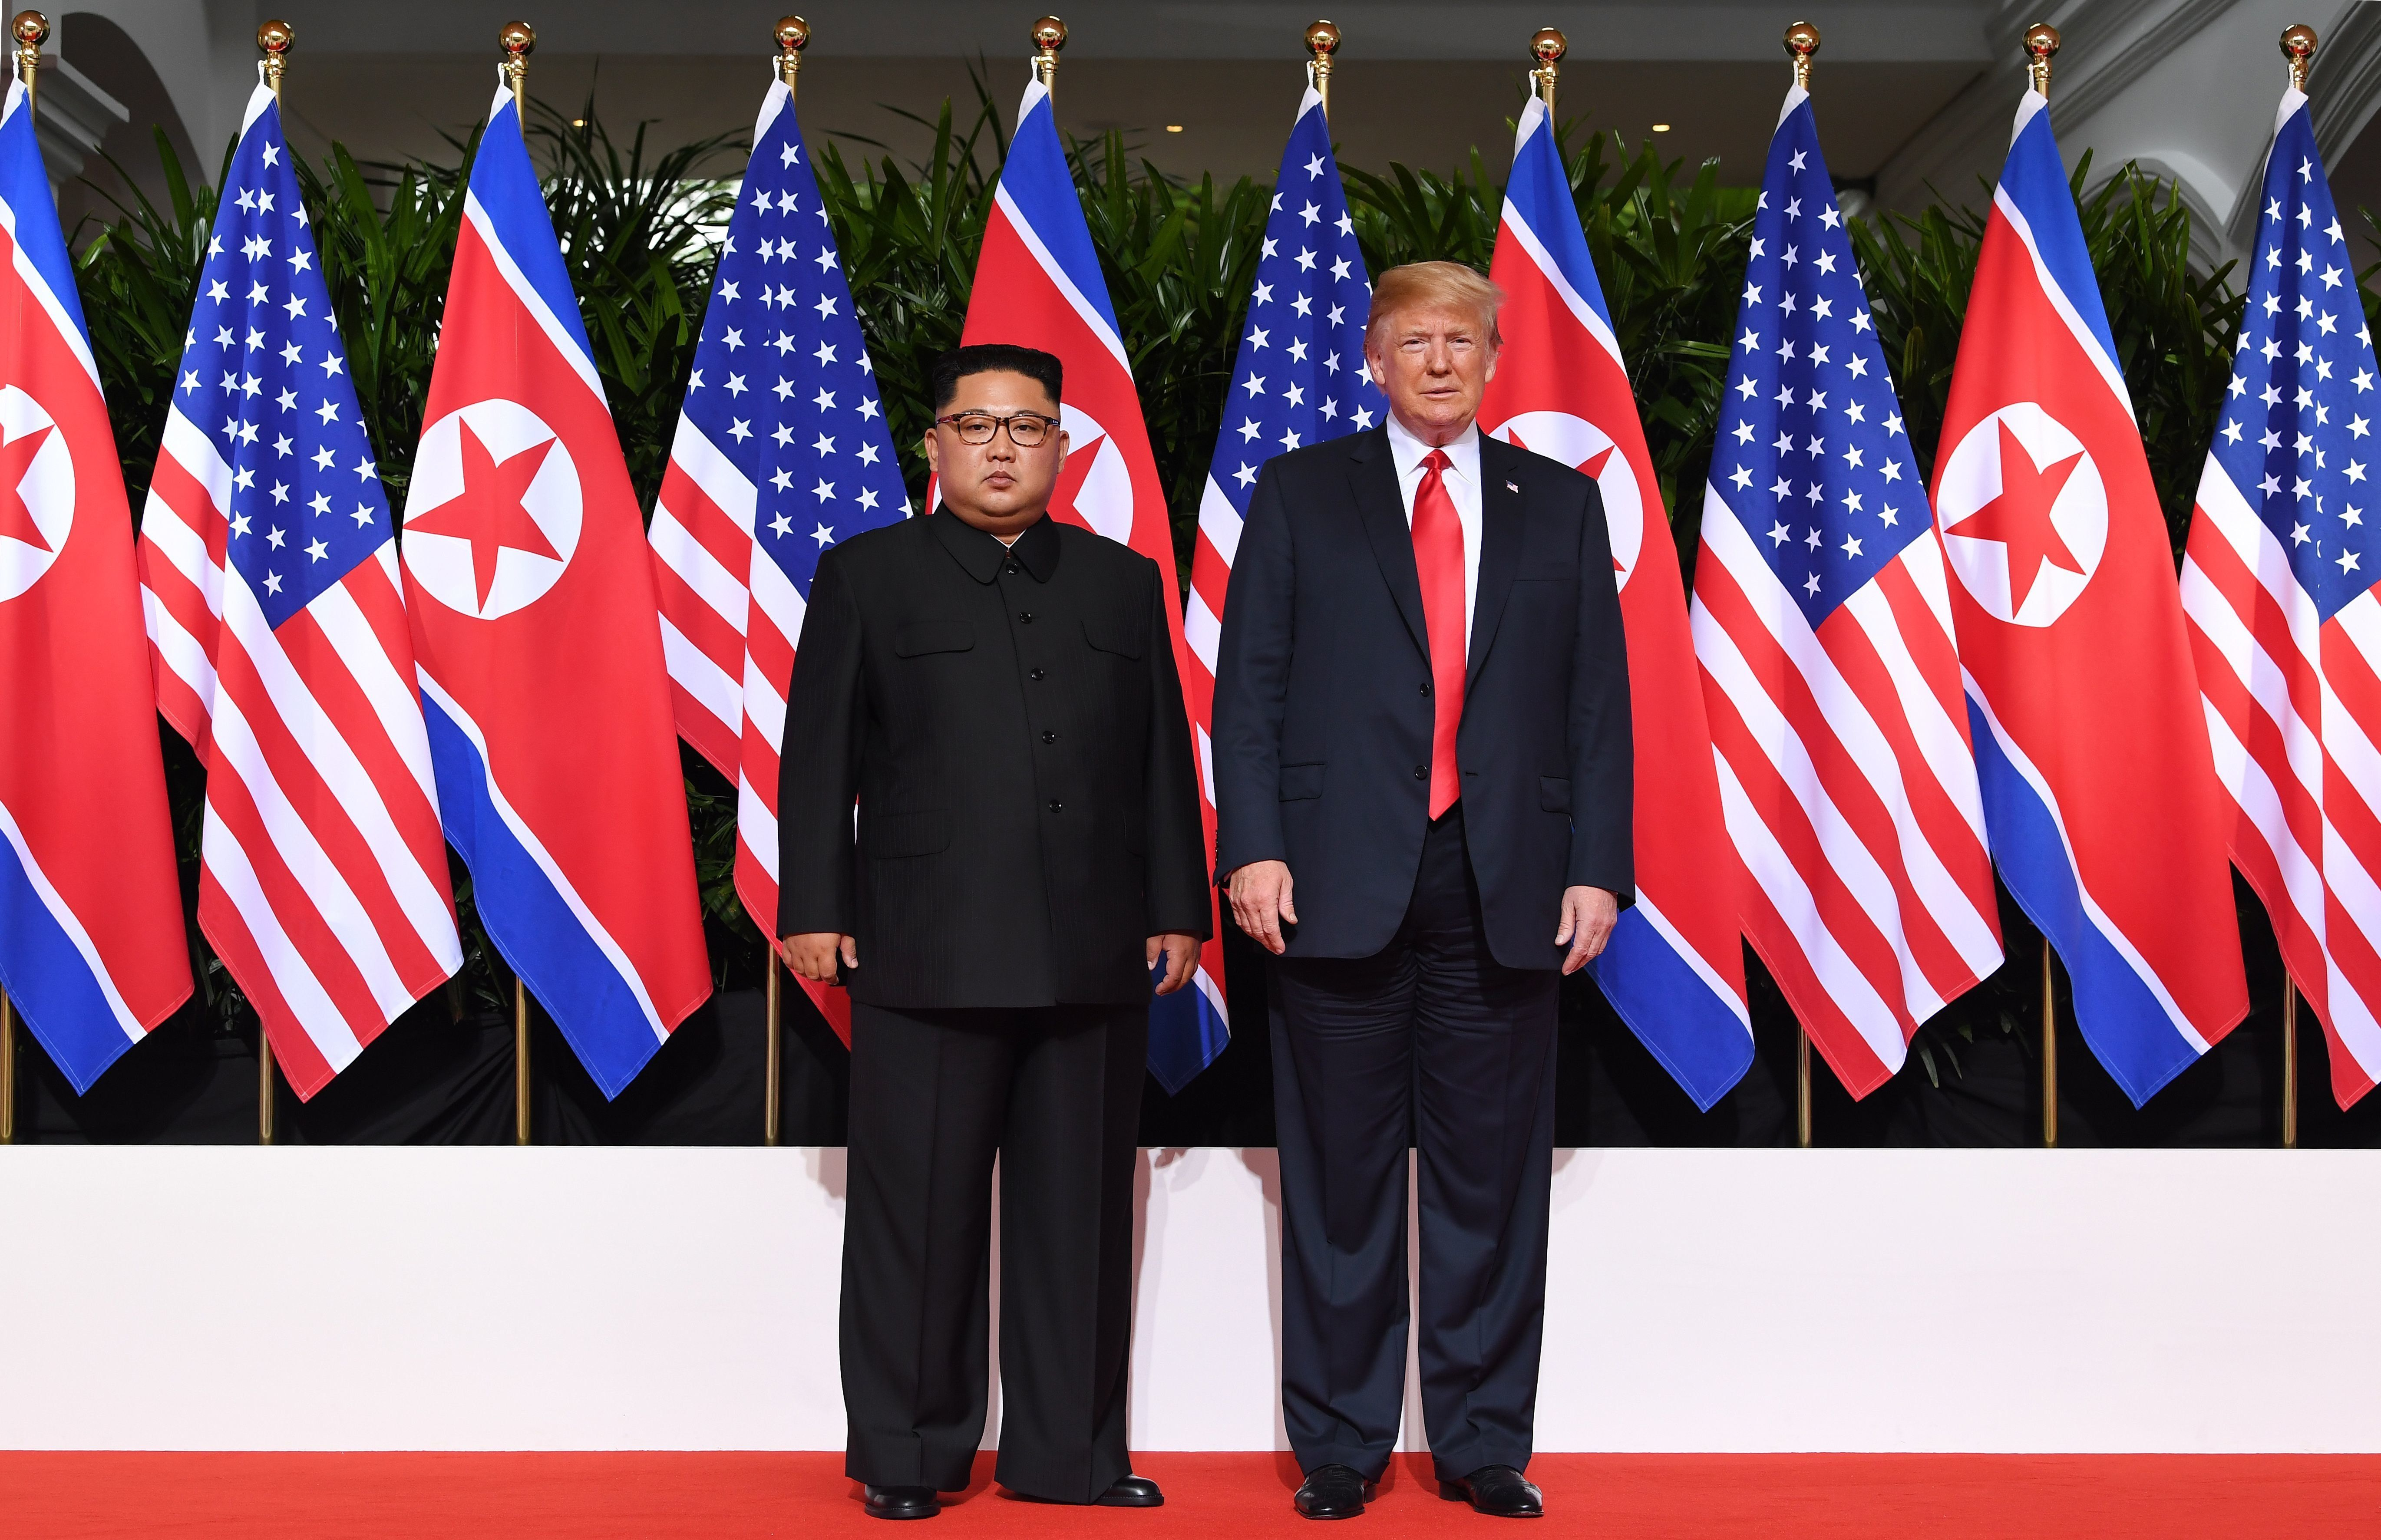 US President Donald Trump (R) poses with North Korea's leader Kim Jong Un (L) at the start of their historic US-North Korea summit, at the Capella Hotel on Sentosa island in Singapore on June 12, 2018. - Donald Trump and Kim Jong Un have become on June 12 the first sitting US and North Korean leaders to meet, shake hands and negotiate to end a decades-old nuclear stand-off. (Photo by SAUL LOEB / AFP)        (Photo credit should read SAUL LOEB/AFP/Getty Images)